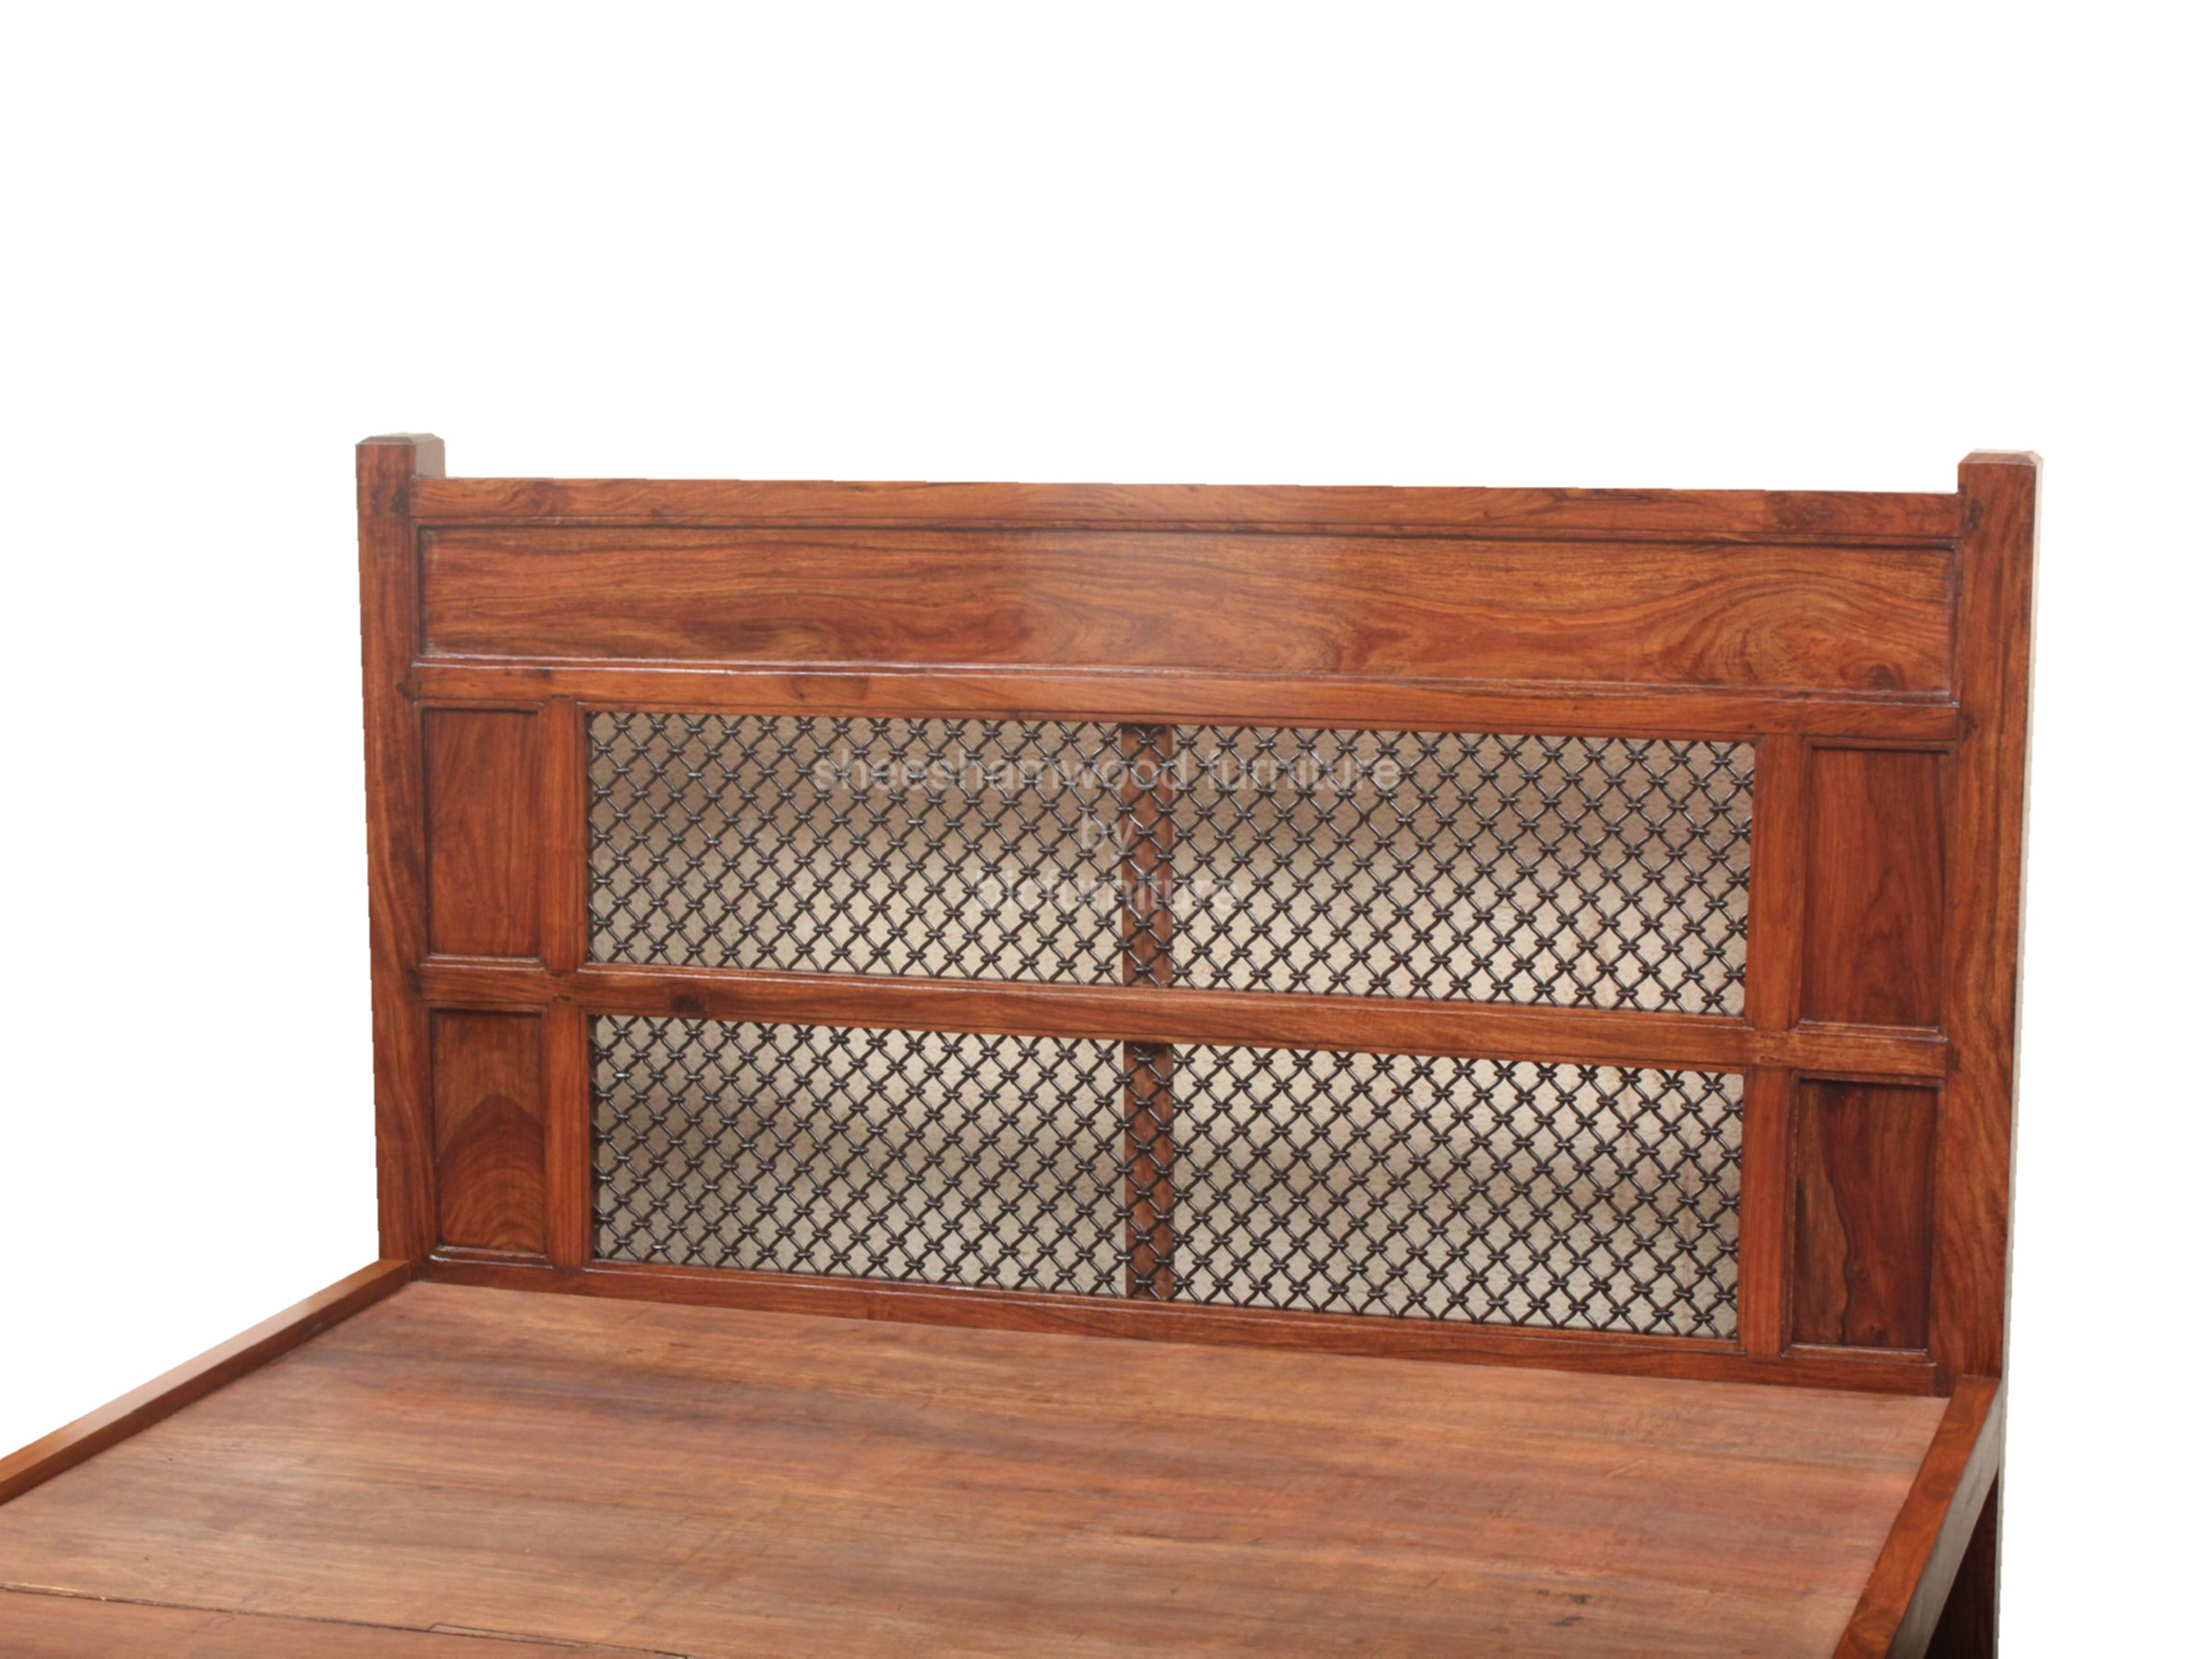 Indian wooden furniture bed - Solid_wood_wood__wrought_iron_jali_double_bed